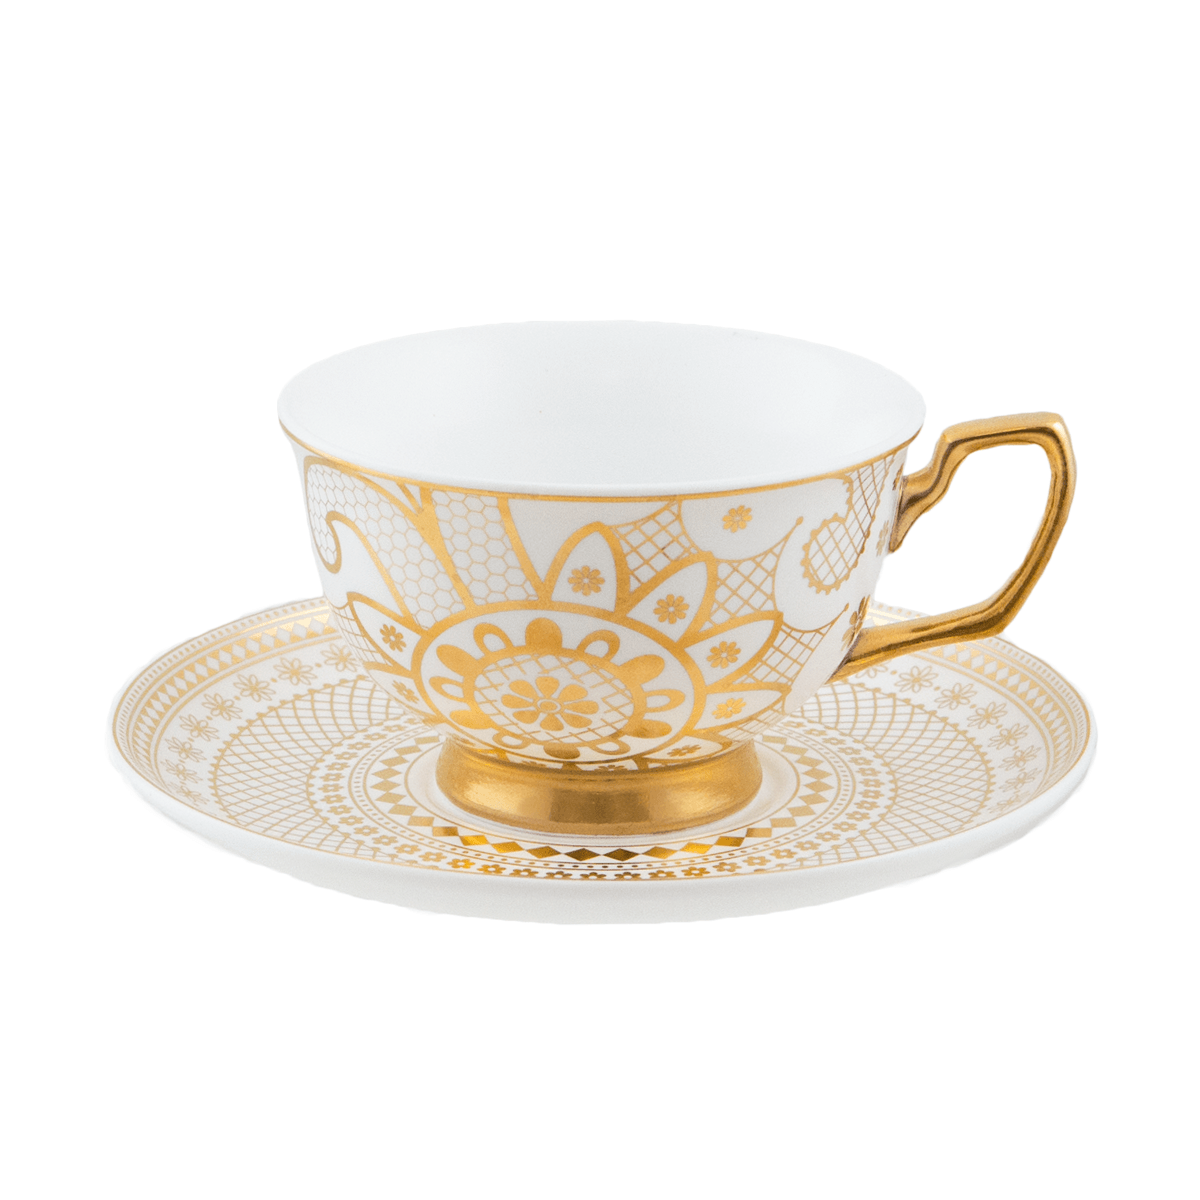 Georgia Lace Pearl Teacup